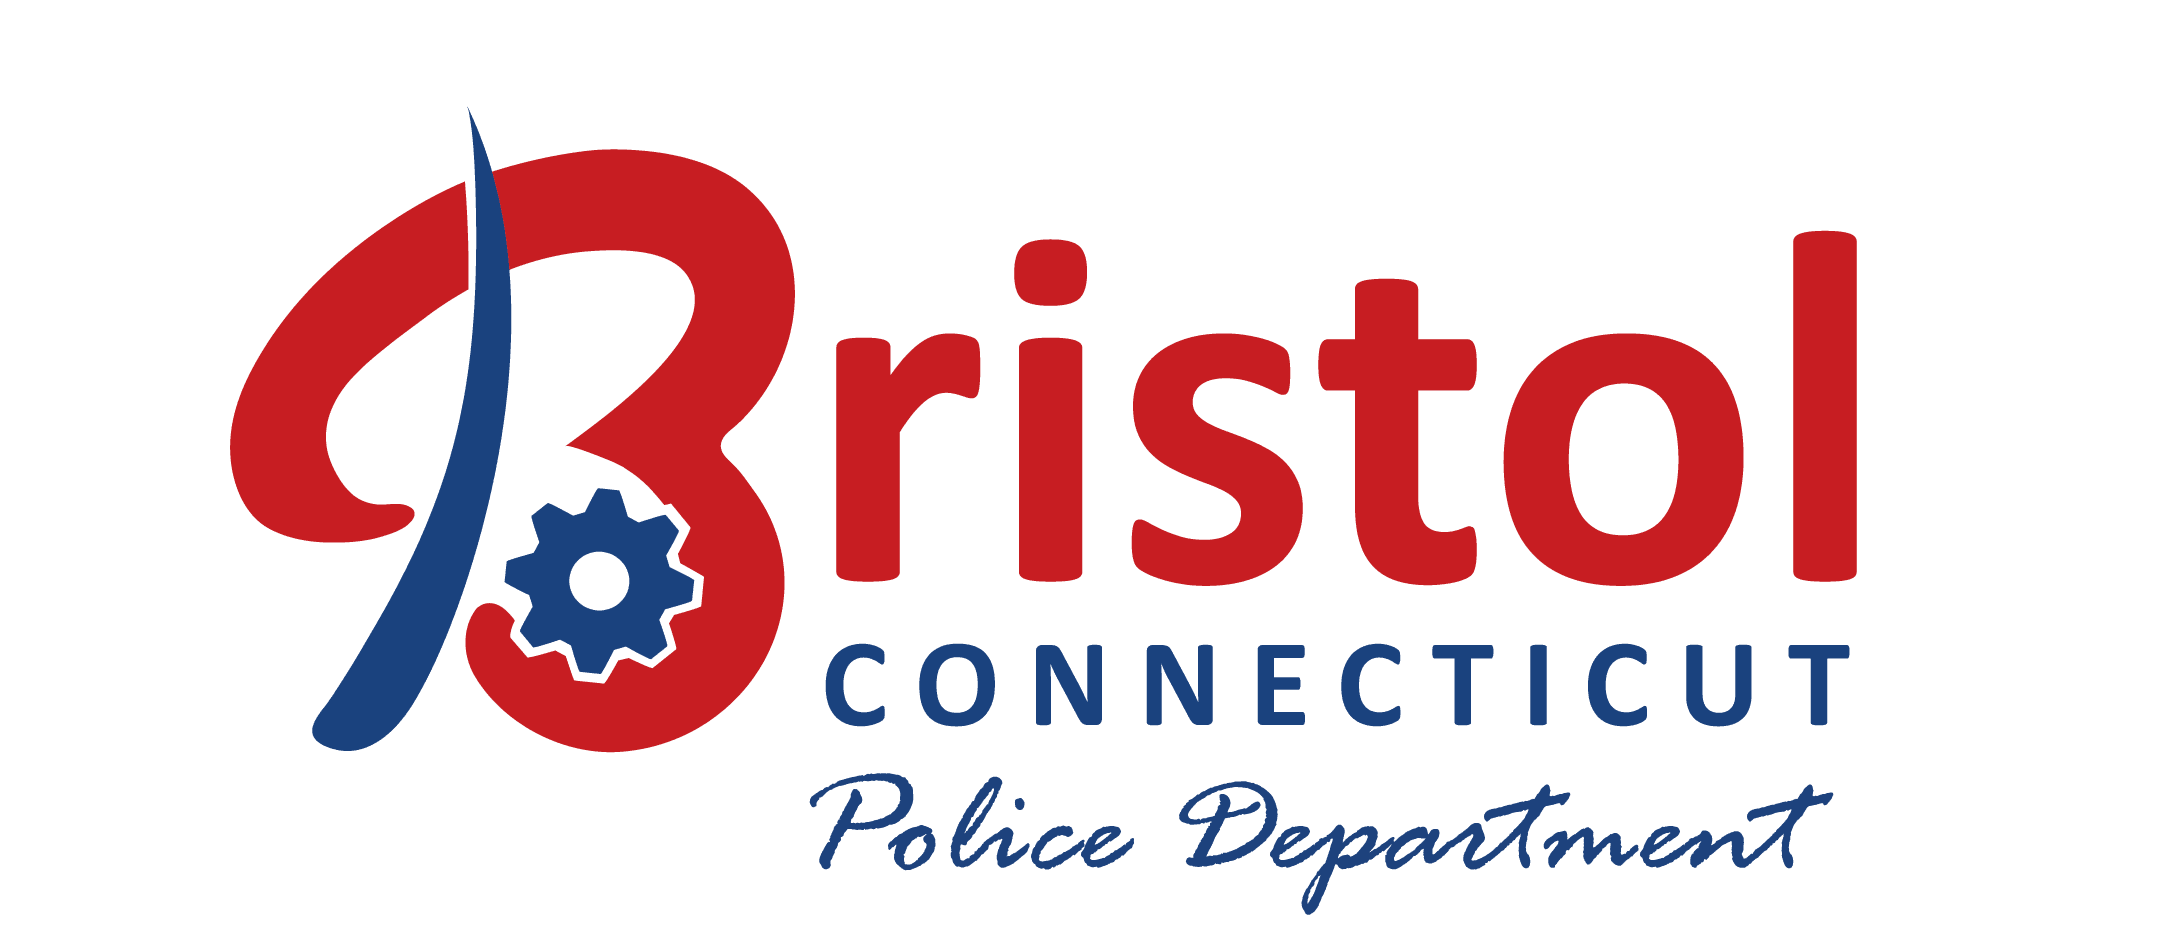 Bristol Police Arrest Blotter | Bristol, CT - Official Website